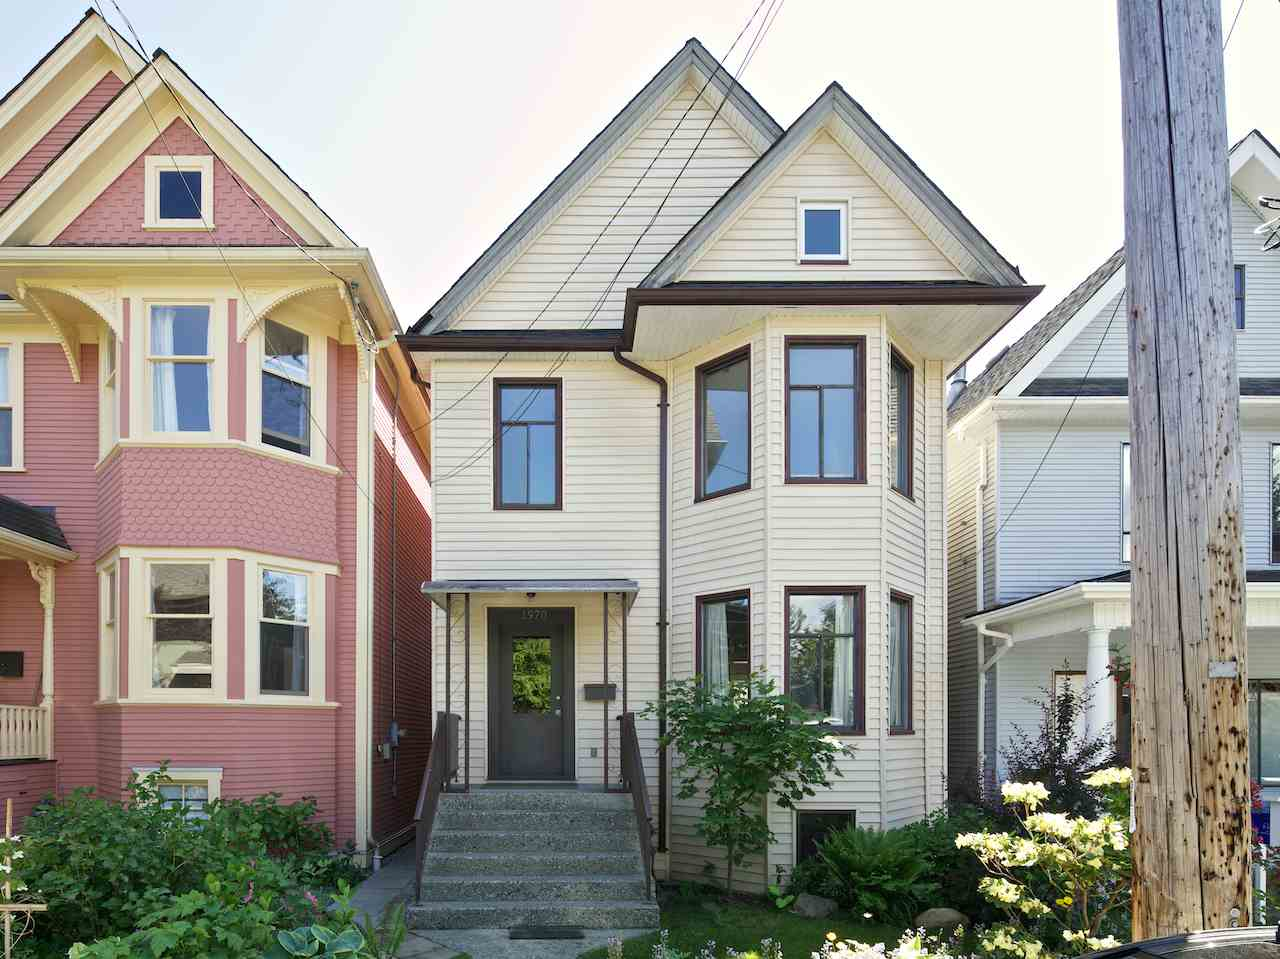 Main Photo: 1970 WILLIAM Street in Vancouver: Grandview VE House for sale (Vancouver East)  : MLS® # R2066668